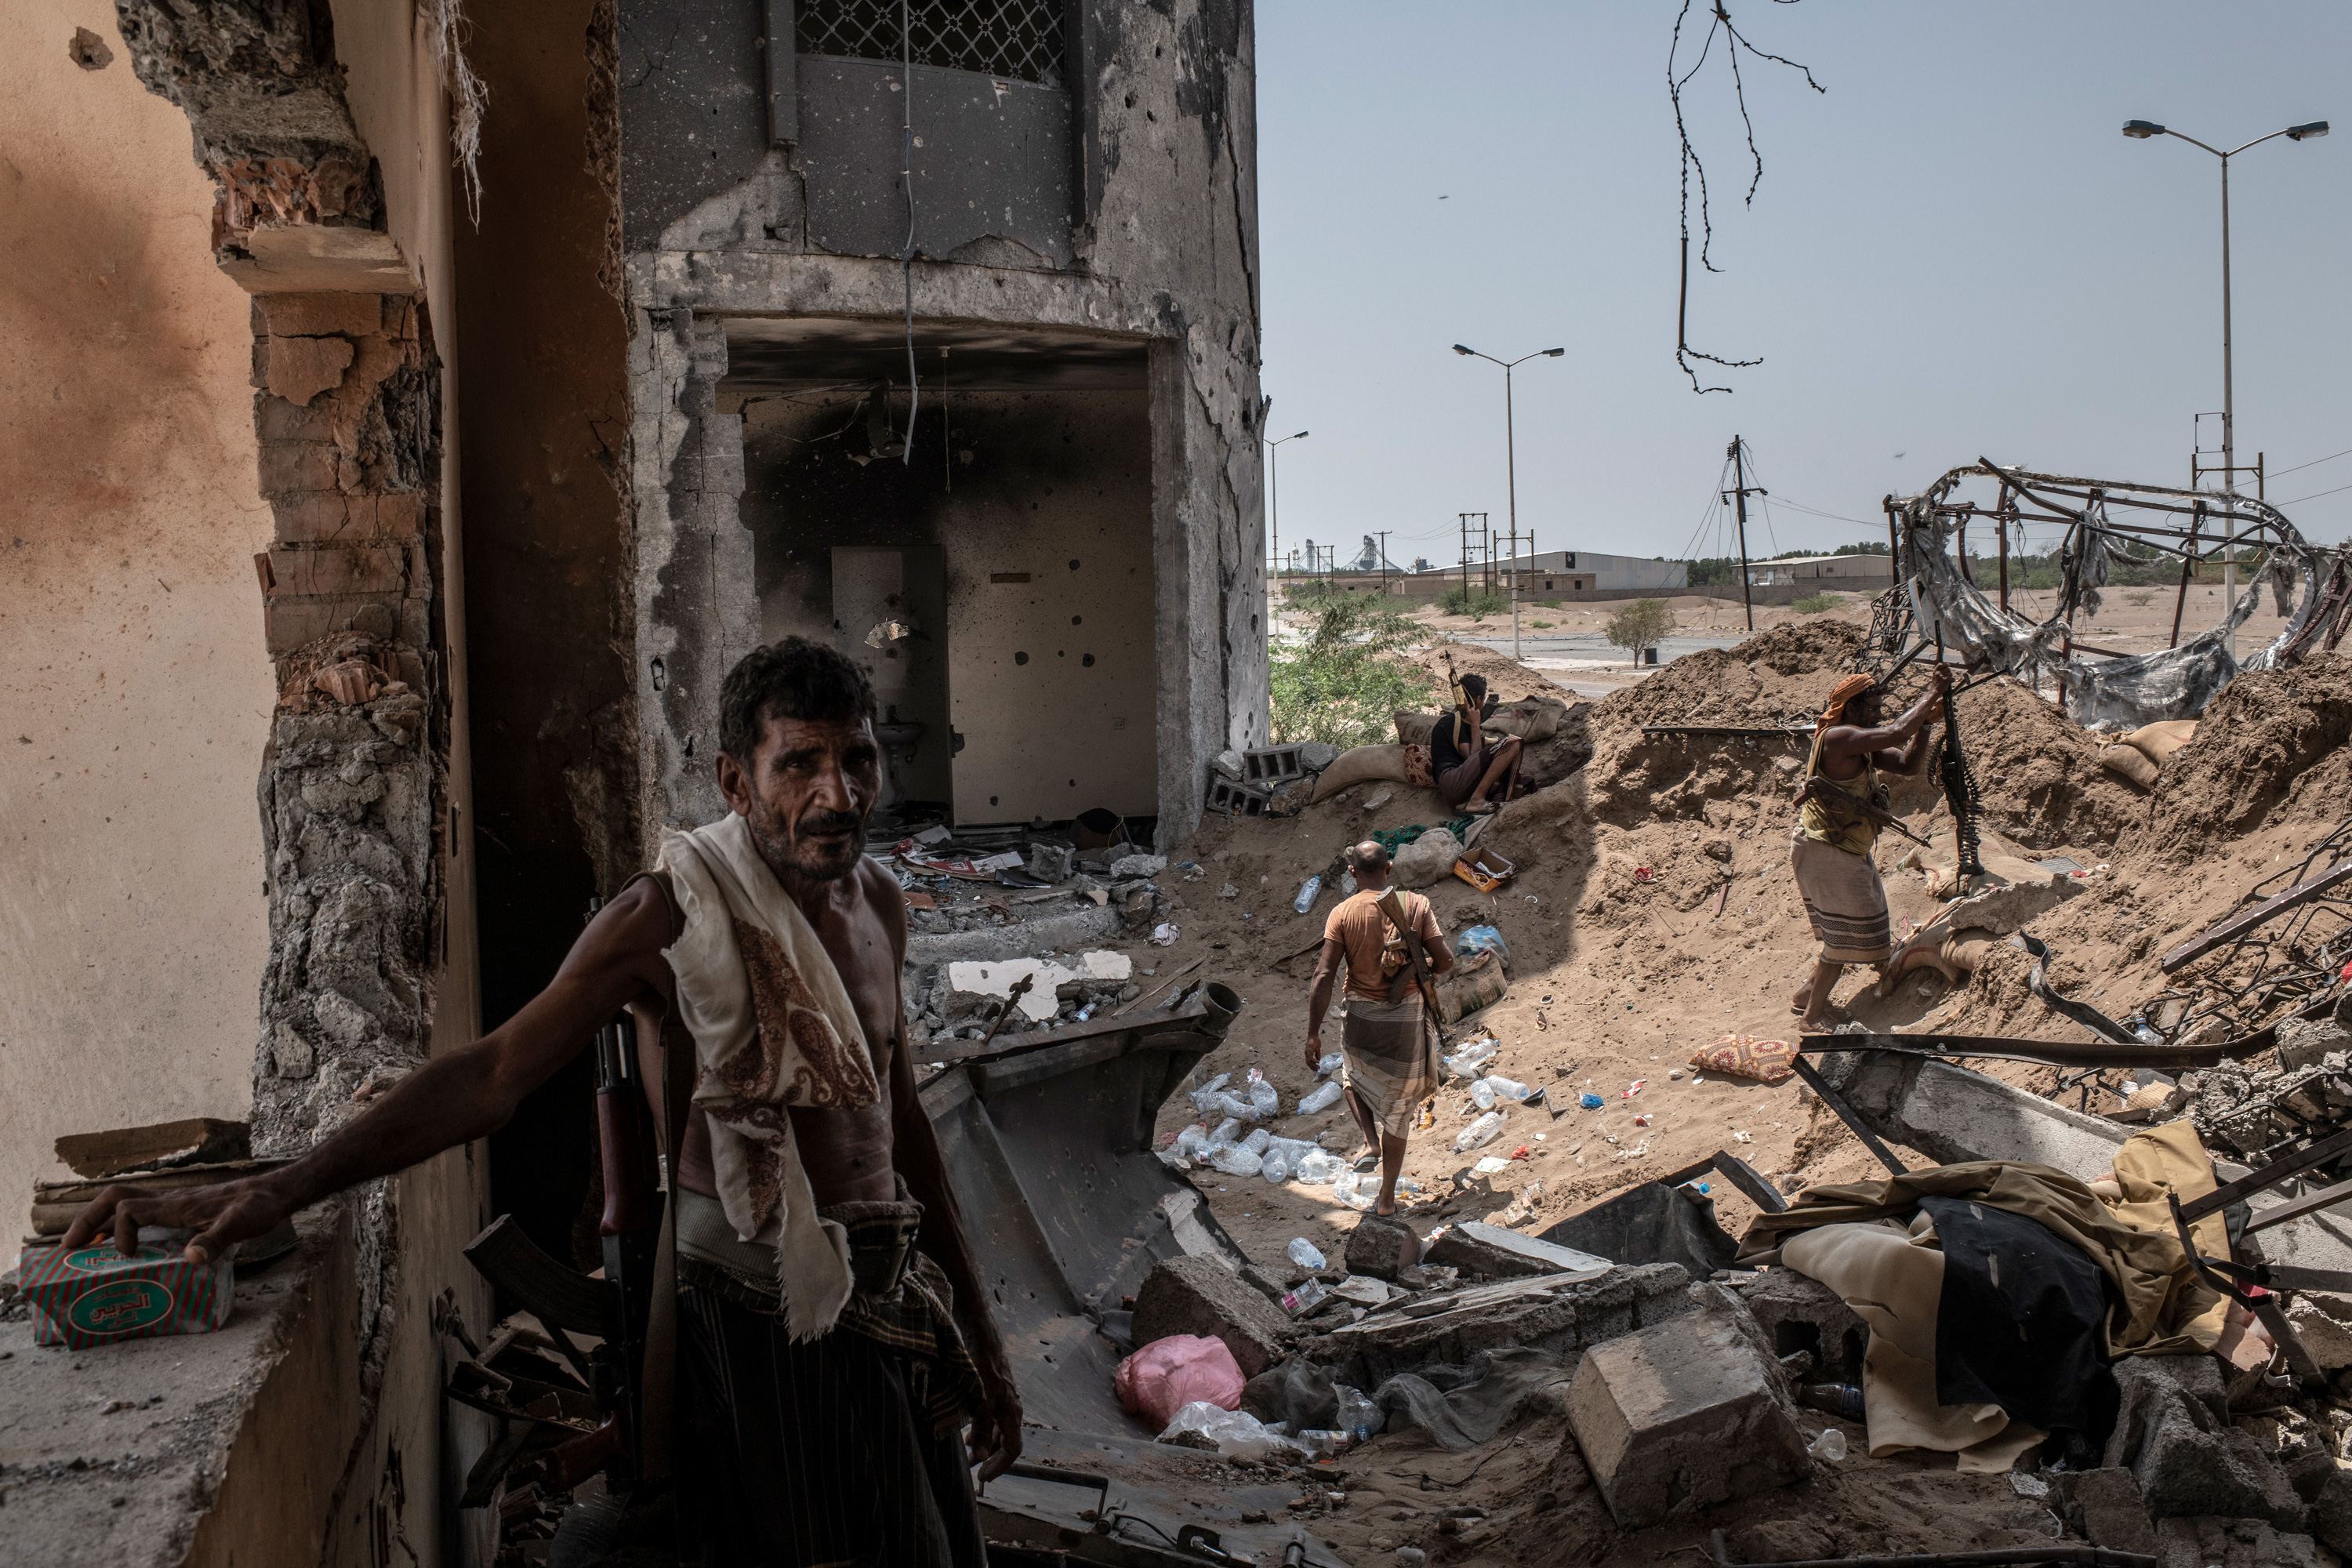 HODEIDAH, YEMEN - SEPTEMBER 21: Yemeni fighters aligned with Yemen's Saudi-led coalition-backed government, man a frontline position at Kilo 16, an area which contains the main supply route linking Hodeidah city to the rebel-held capital Sanaa, on September 21, 2018 in Hodeidah, Yemen. A coalition military campaign has moved west along Yemen's coast toward Hodeidah, where increasingly bloody battles have killed hundreds since June, putting the country's fragile food supply at risk. (Photo by Andrew Renneisen/Getty Images)